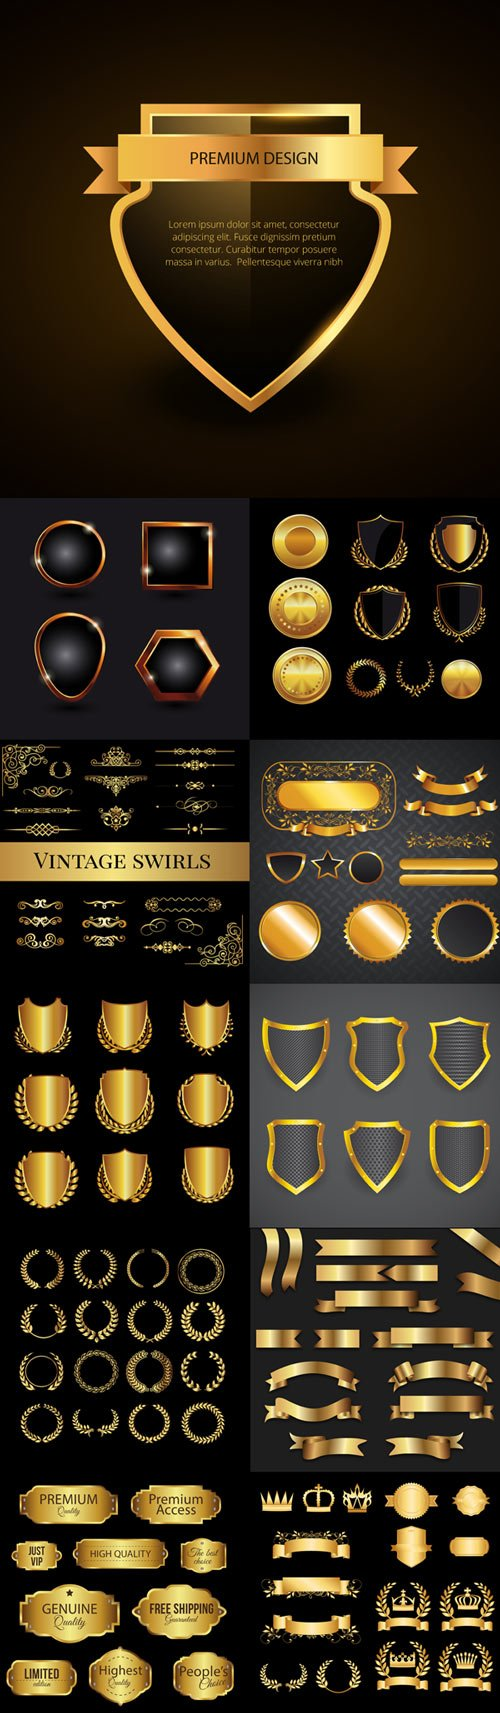 Golden graphic elements vector